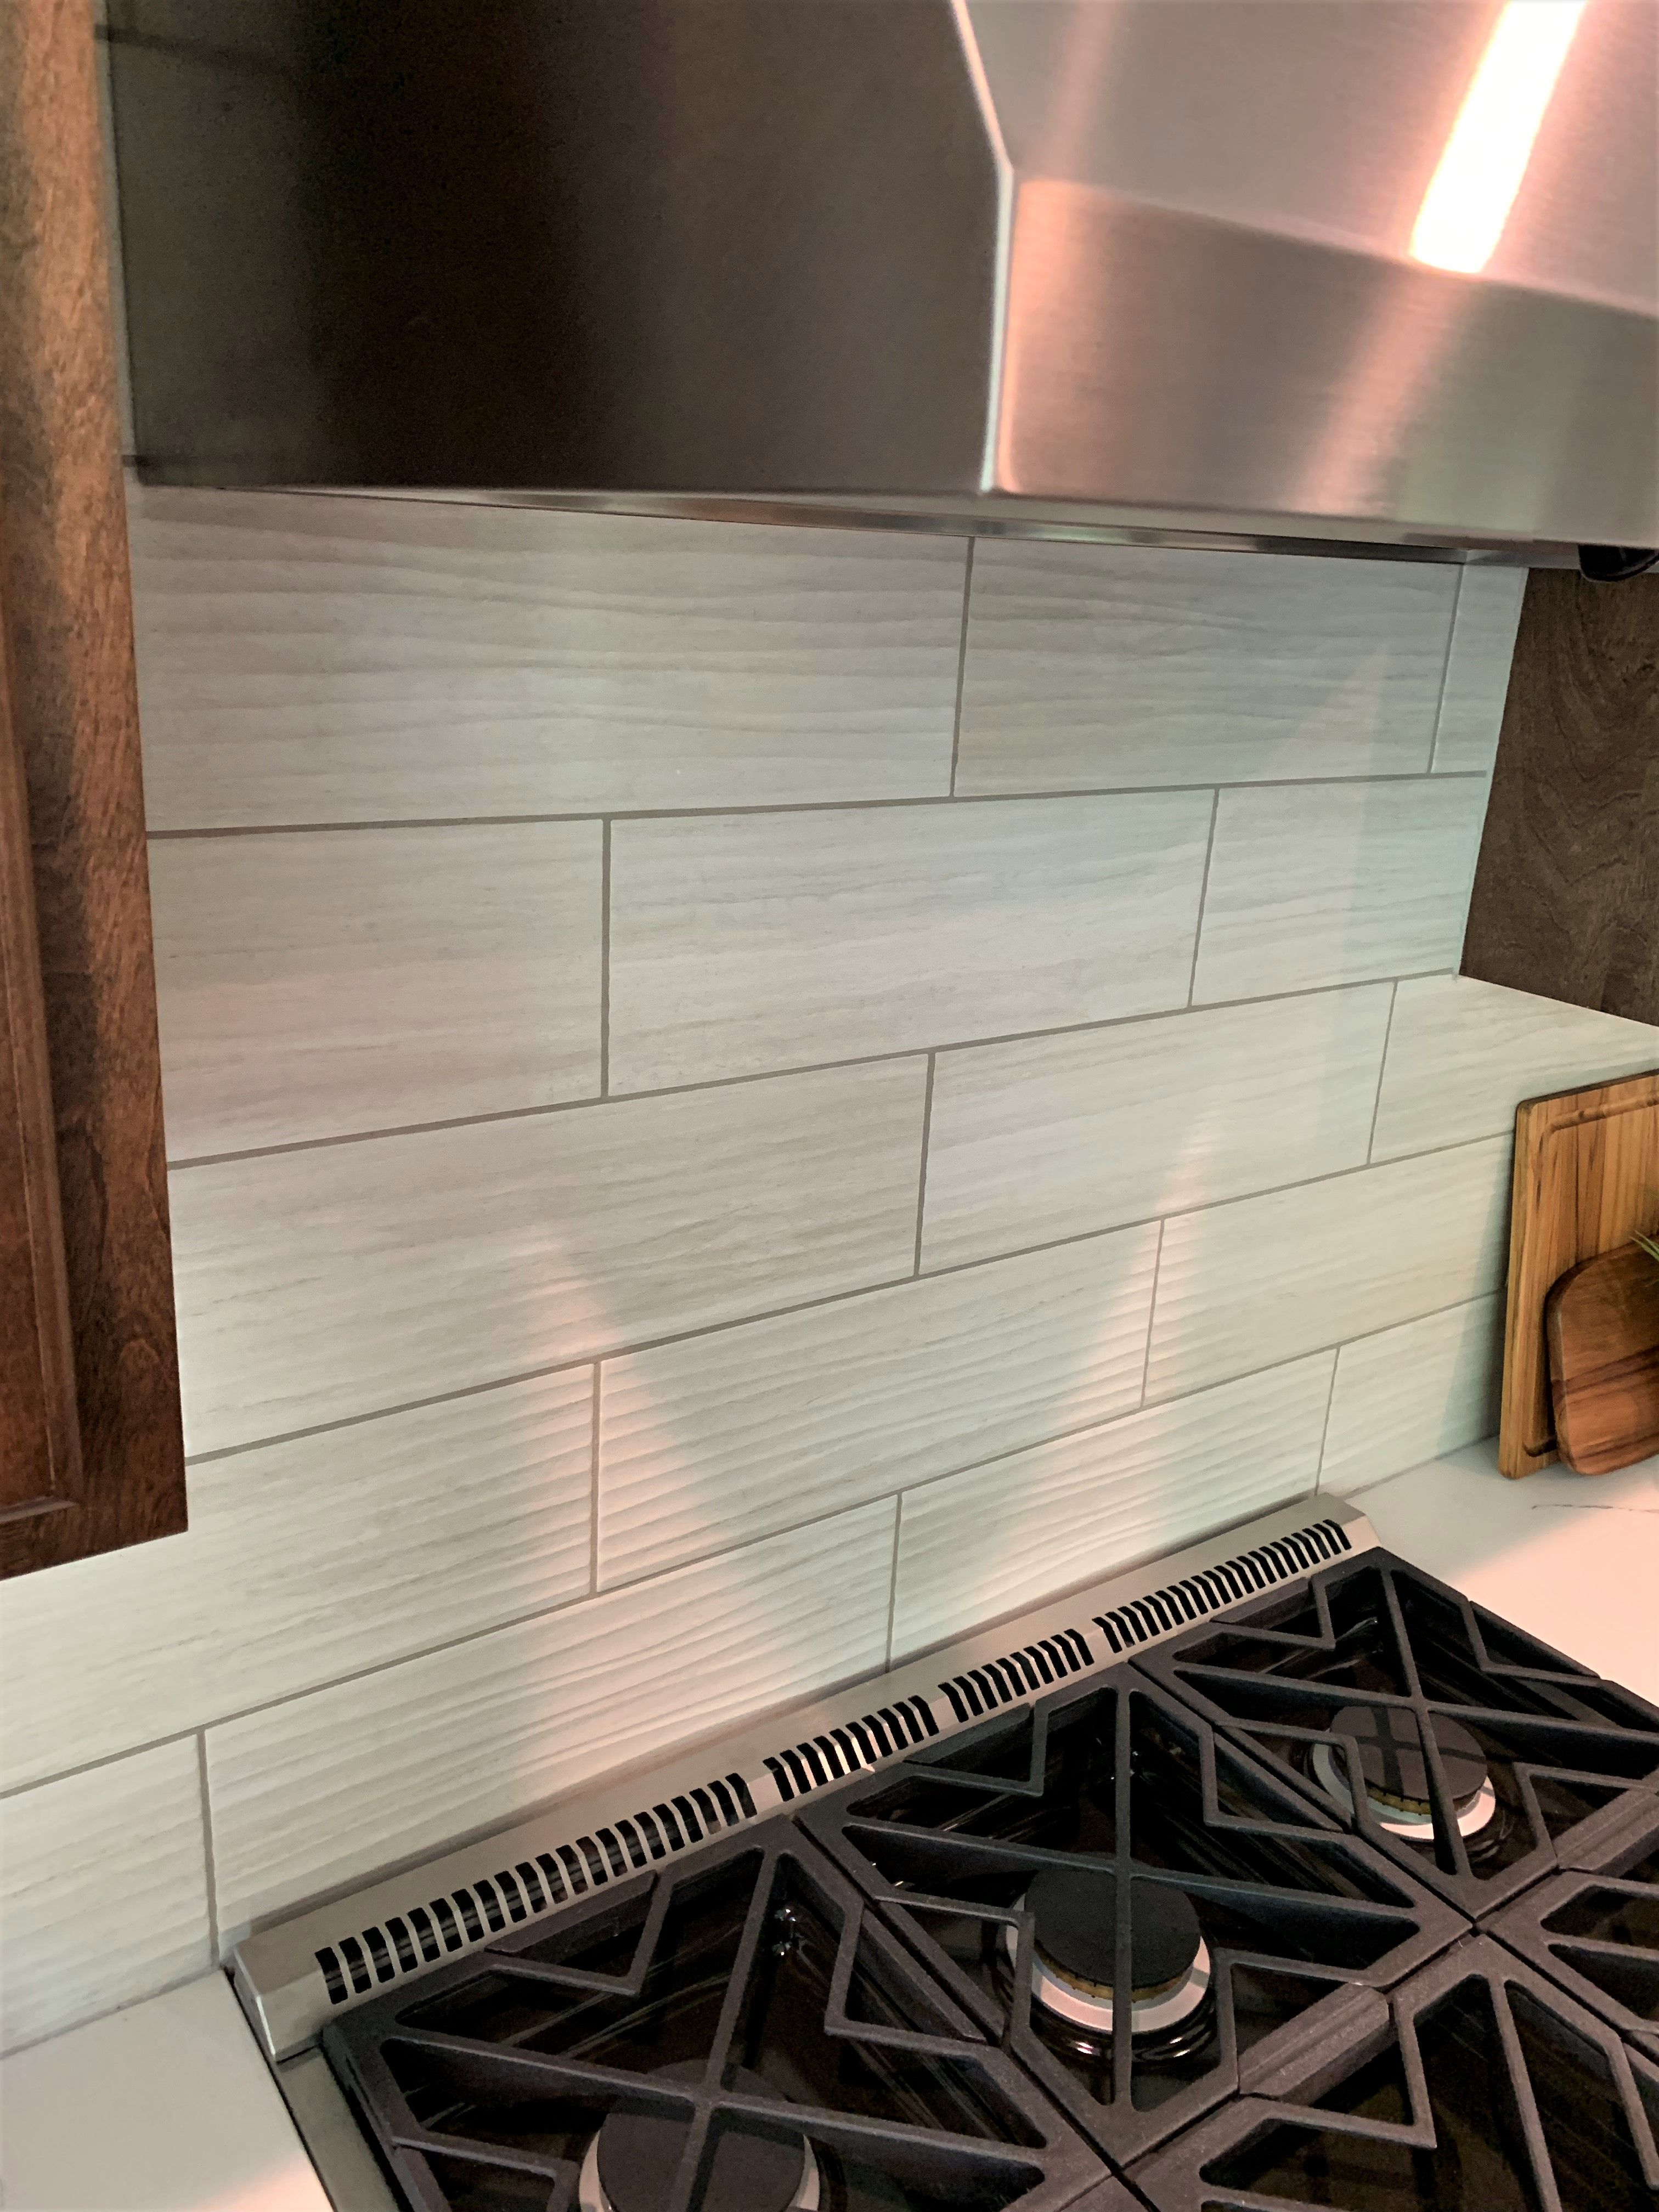 This 6 X18 Daltile Kitchen Backspash Tile Has A Wavy Texture That Adds A Ton Of Character Custom Kitchen Backsplash Kitchen Tiles Backsplash Flooring Store